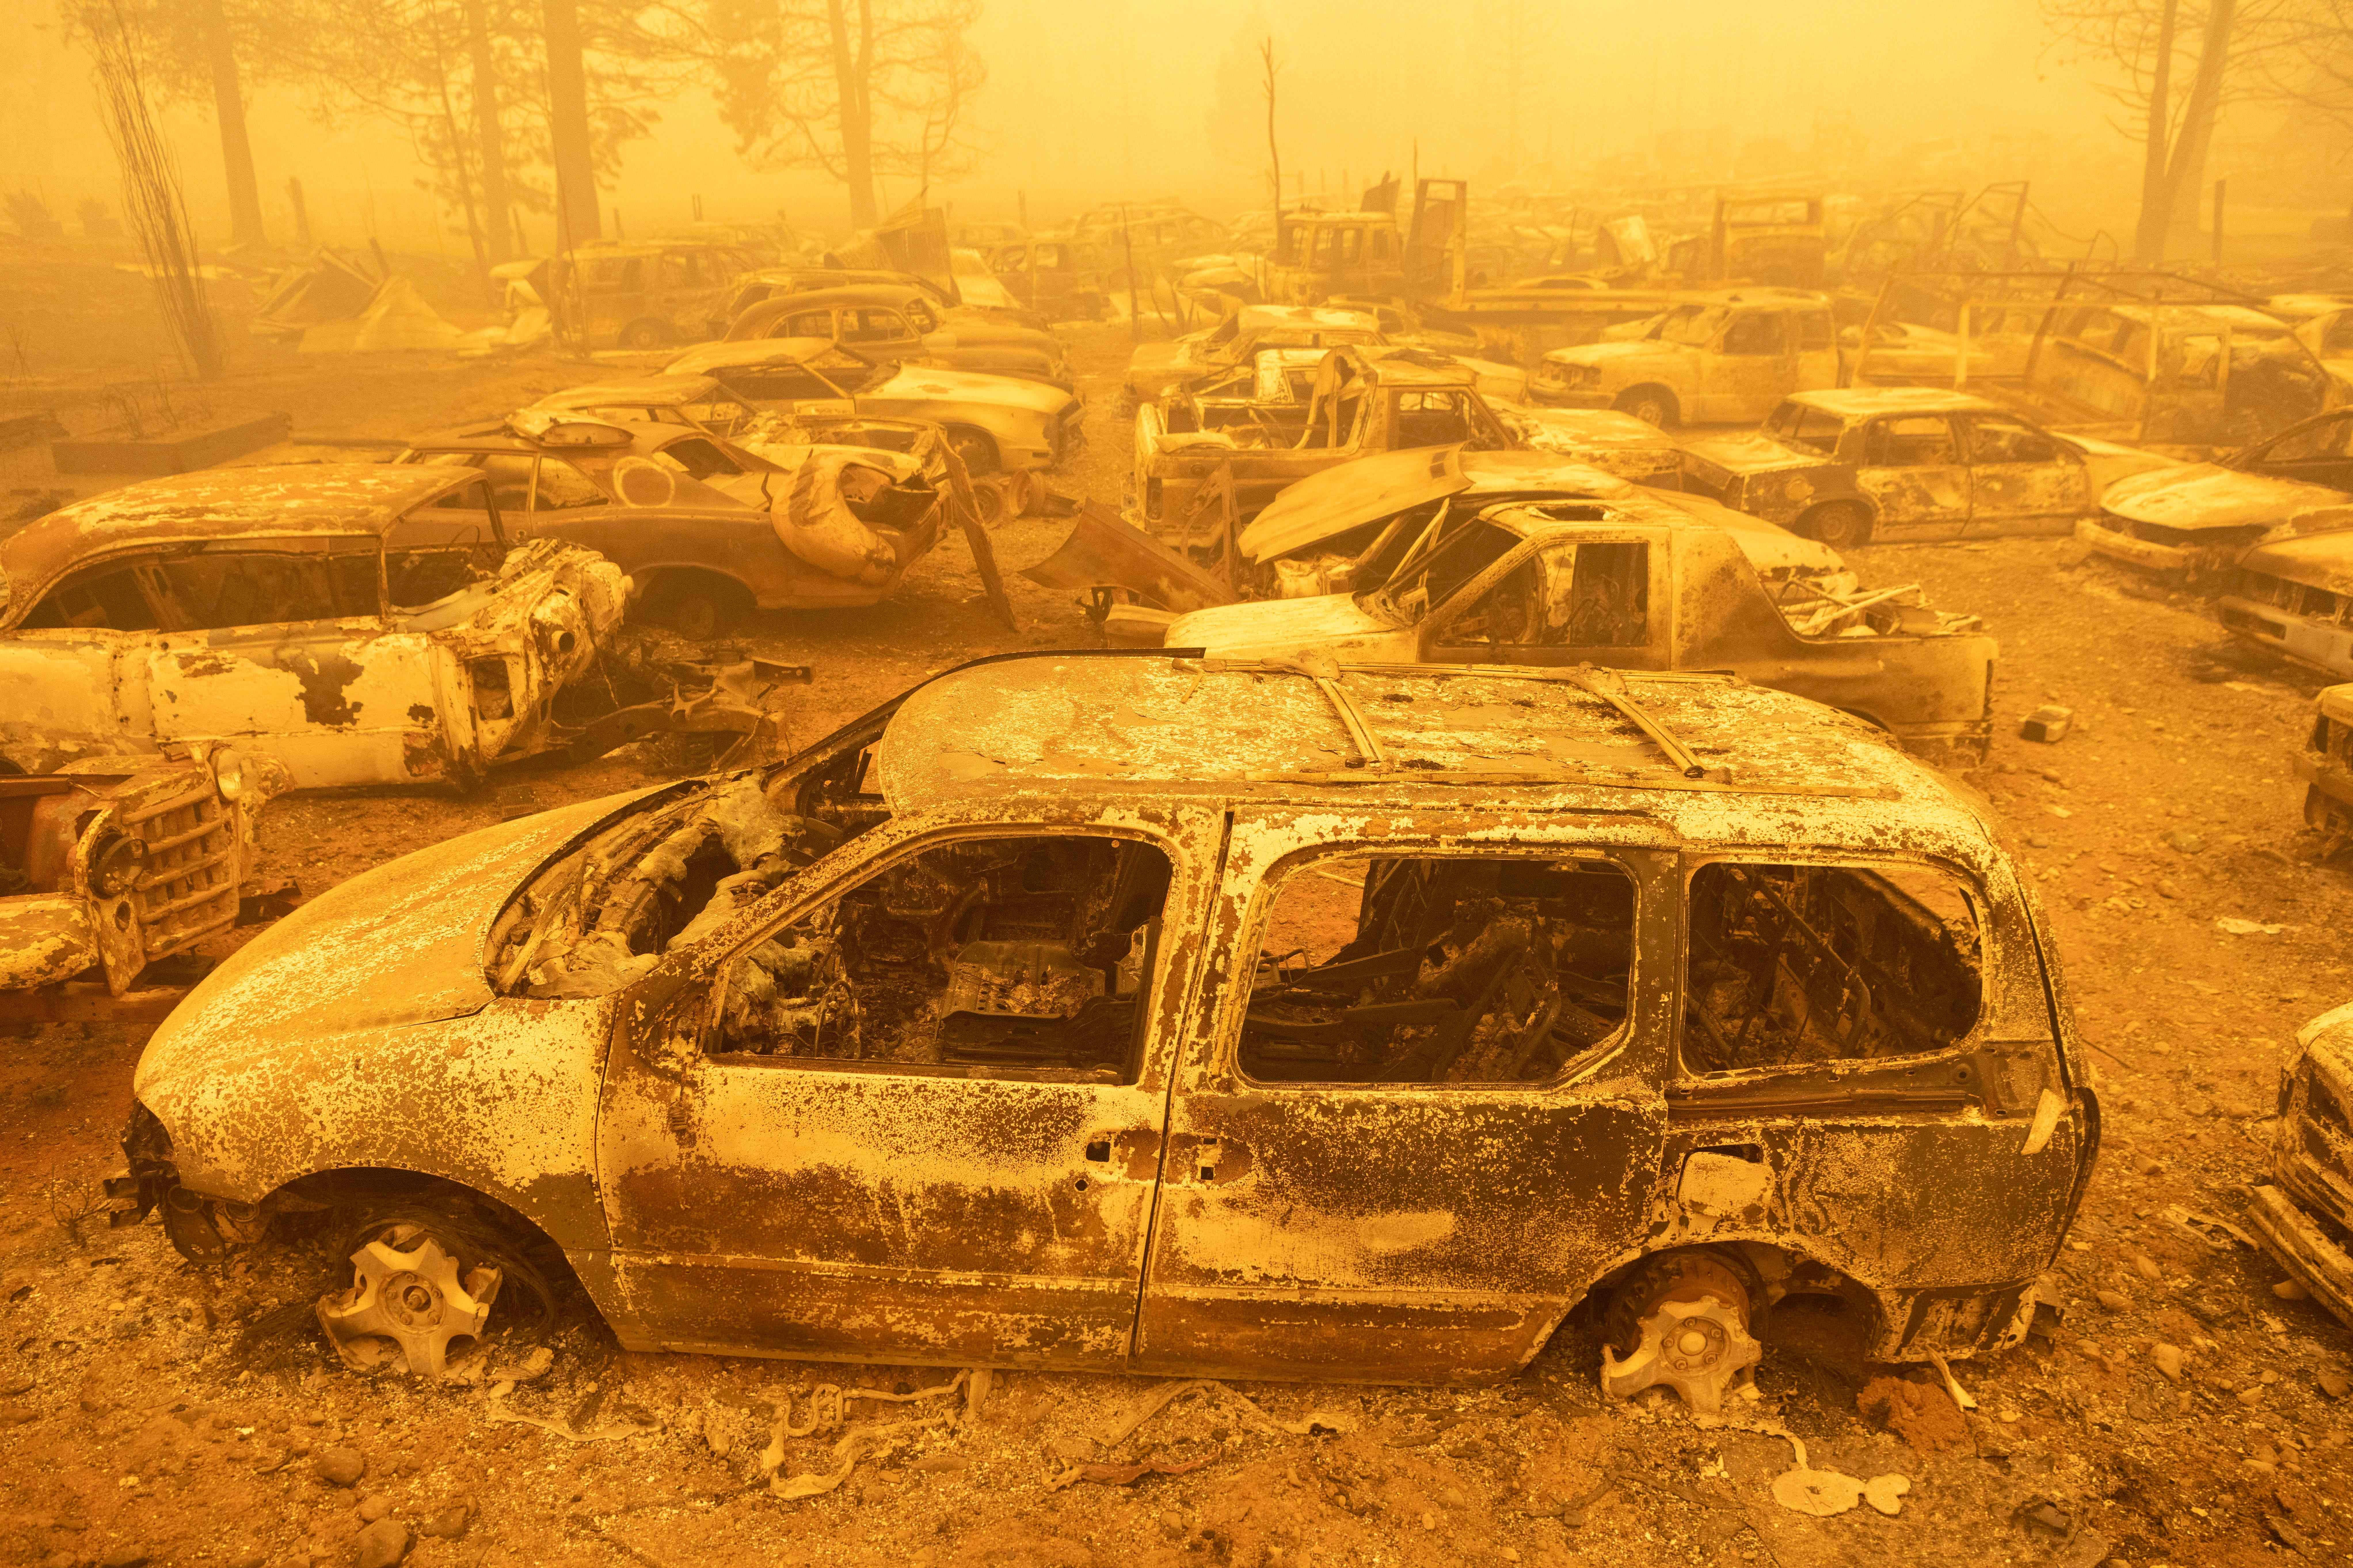 Dozens of burned vehicles rest in heavy smoke during the Dixie fire in Greenville, California on August 6, 2021.